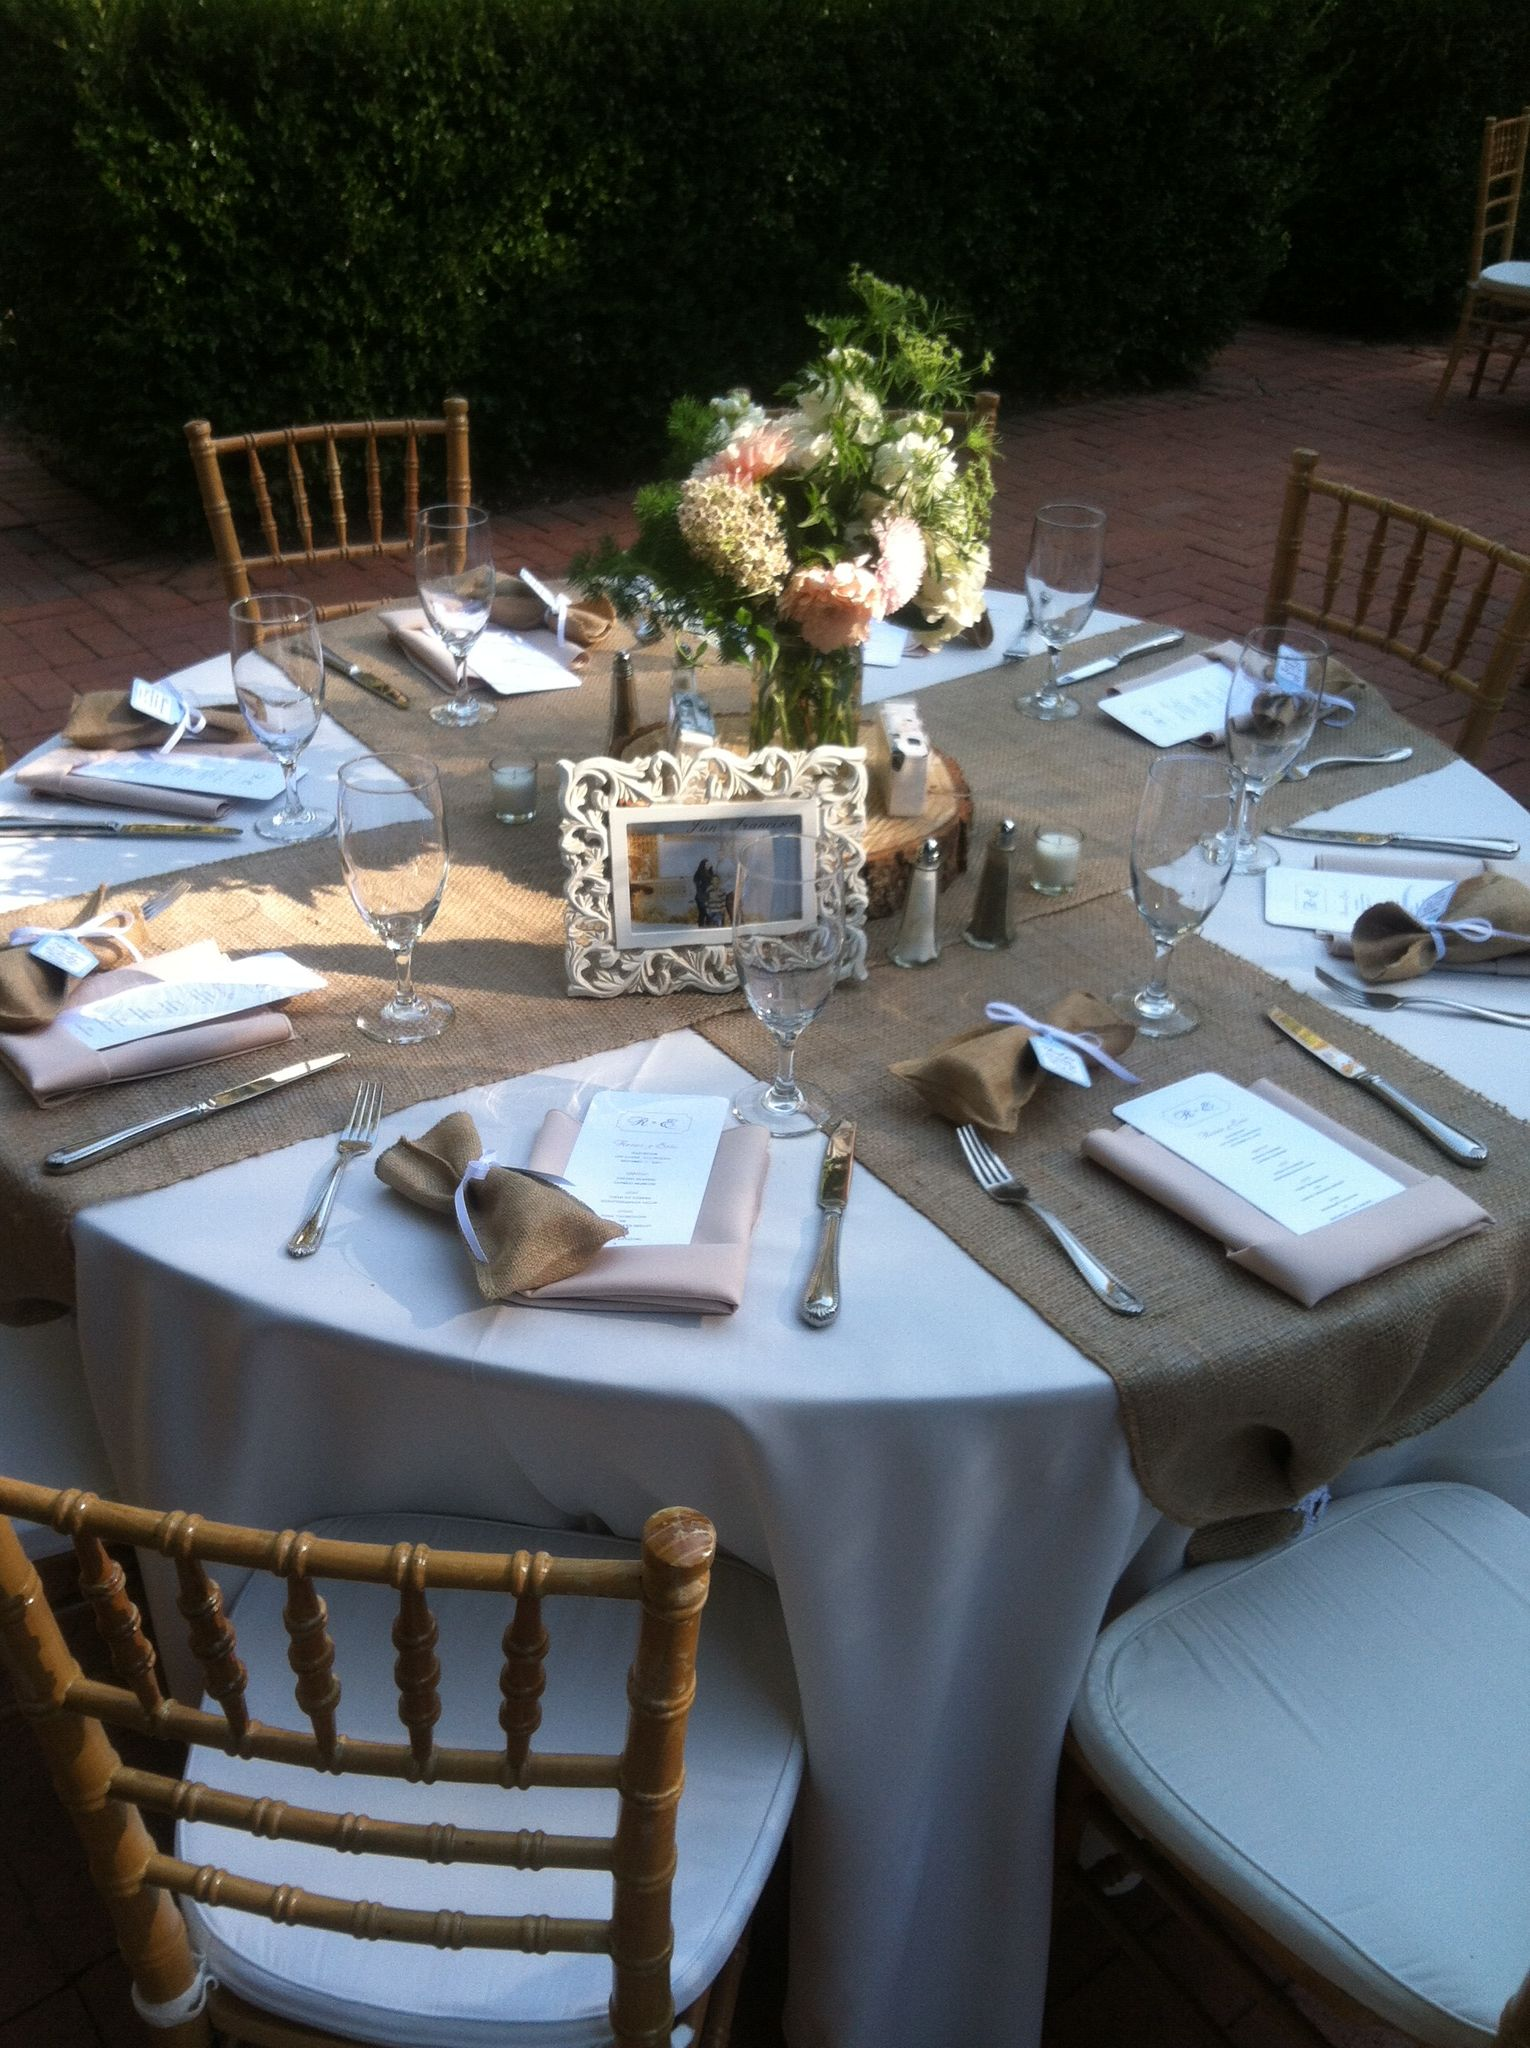 Rustic Wedding Tables Are Just Amazing Burlaptablerunners Beautiful Check Us Out At Artofabric